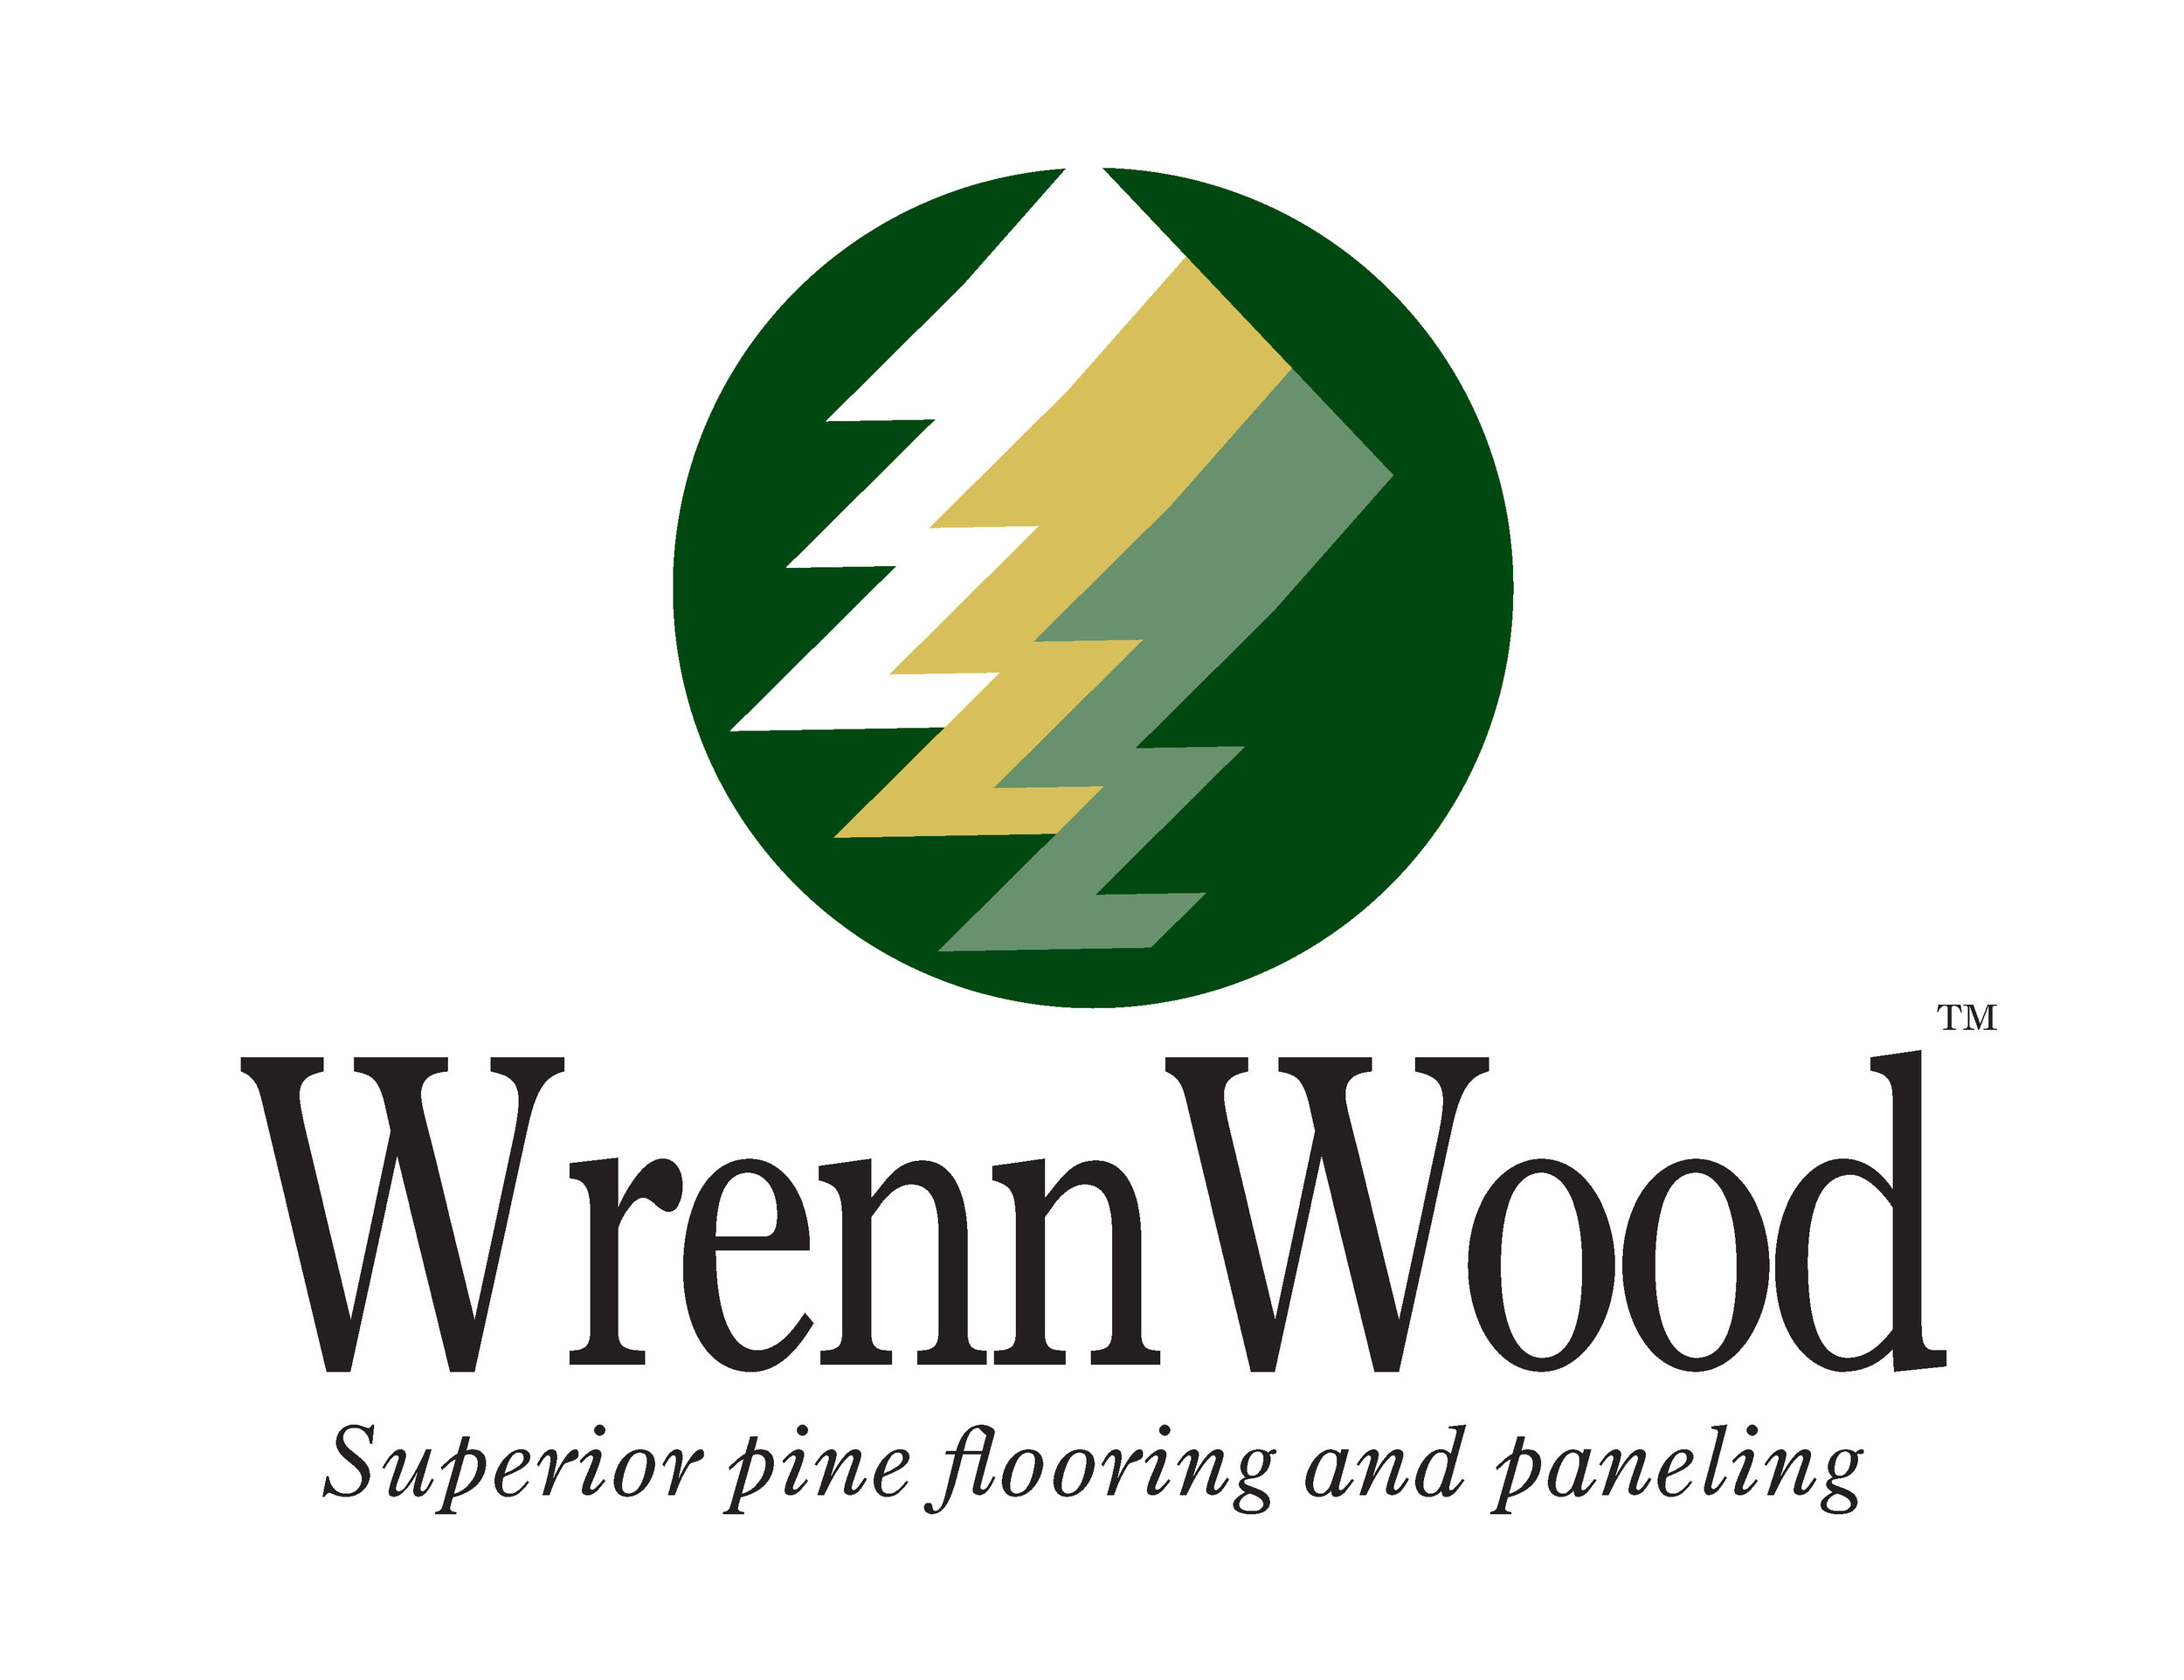 WrennWood-Logo tight crop.jpg